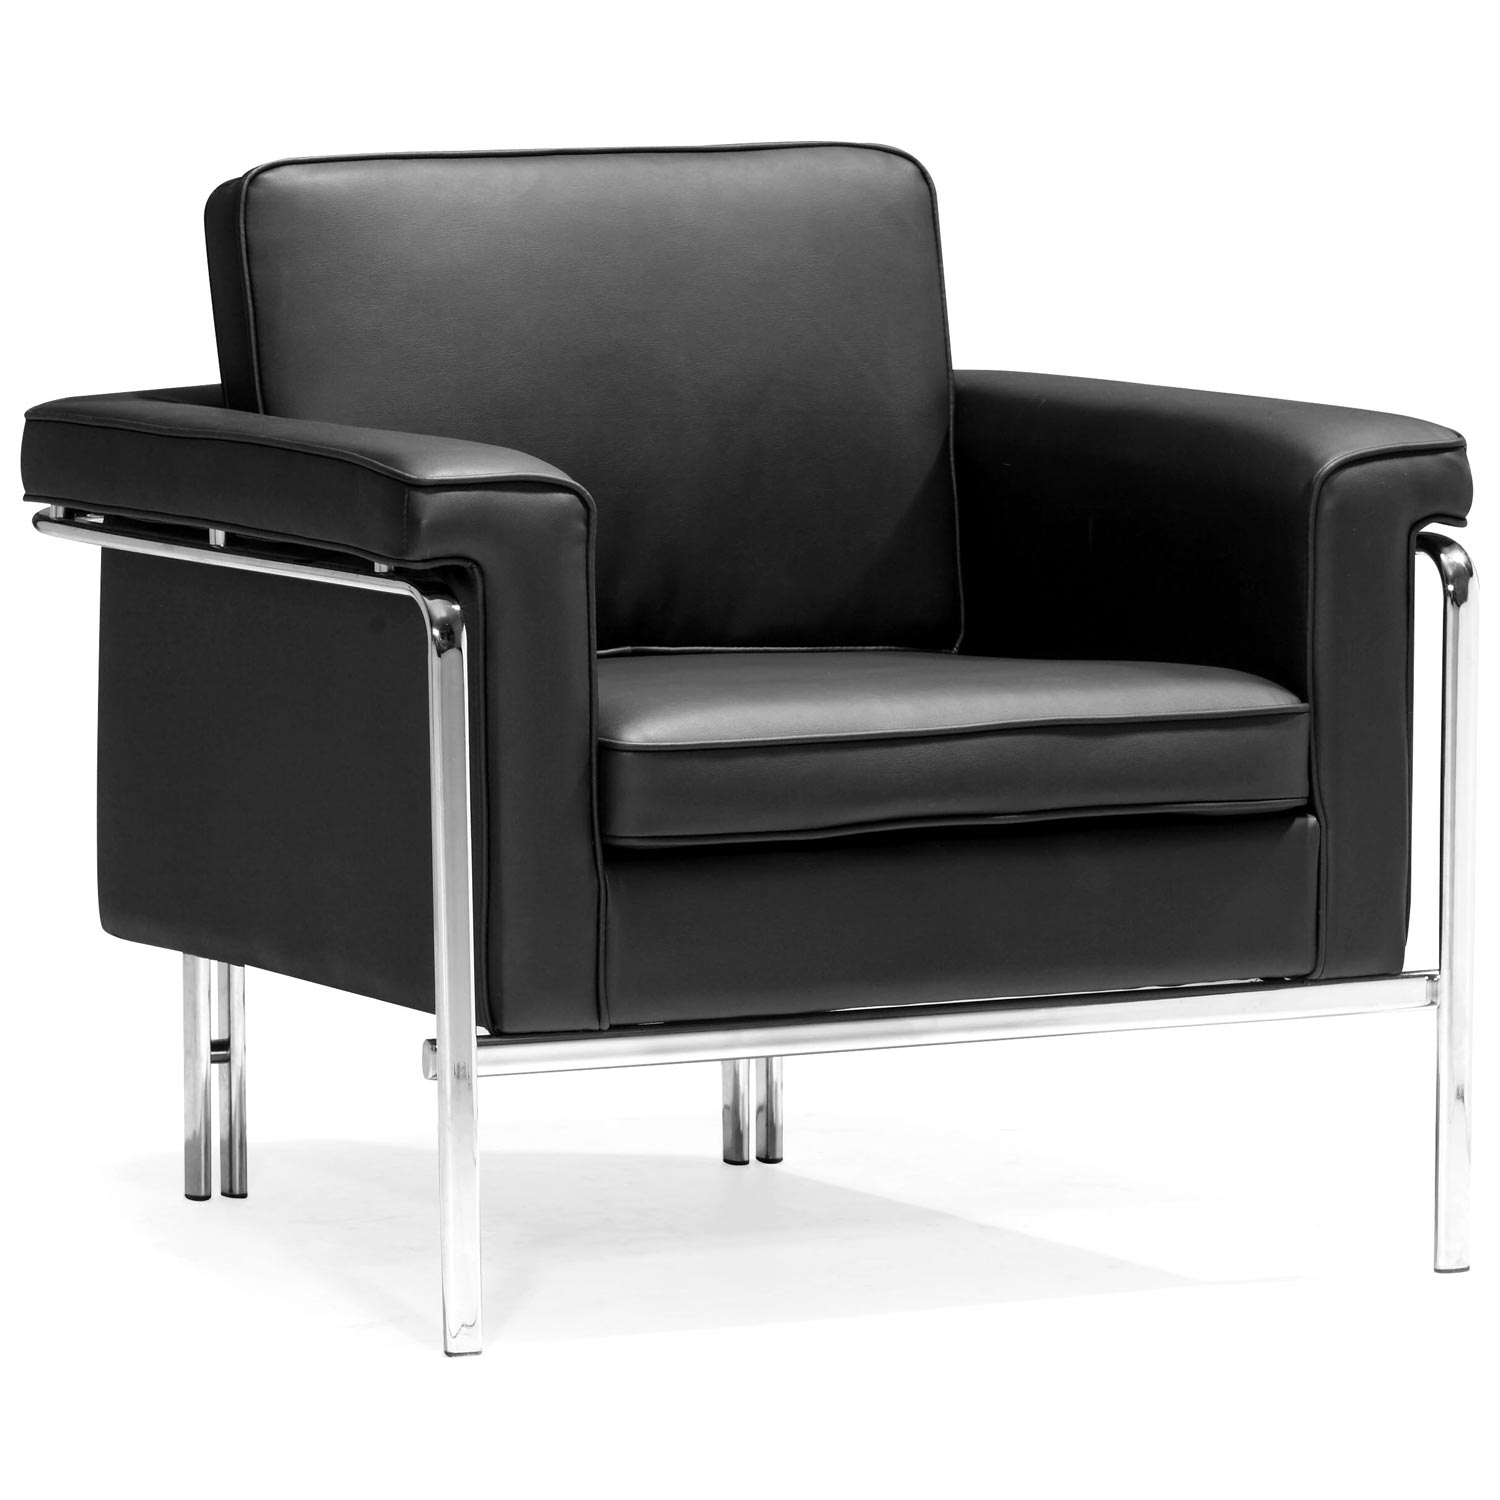 Singular Modern Armchair - Chrome Steel, Black